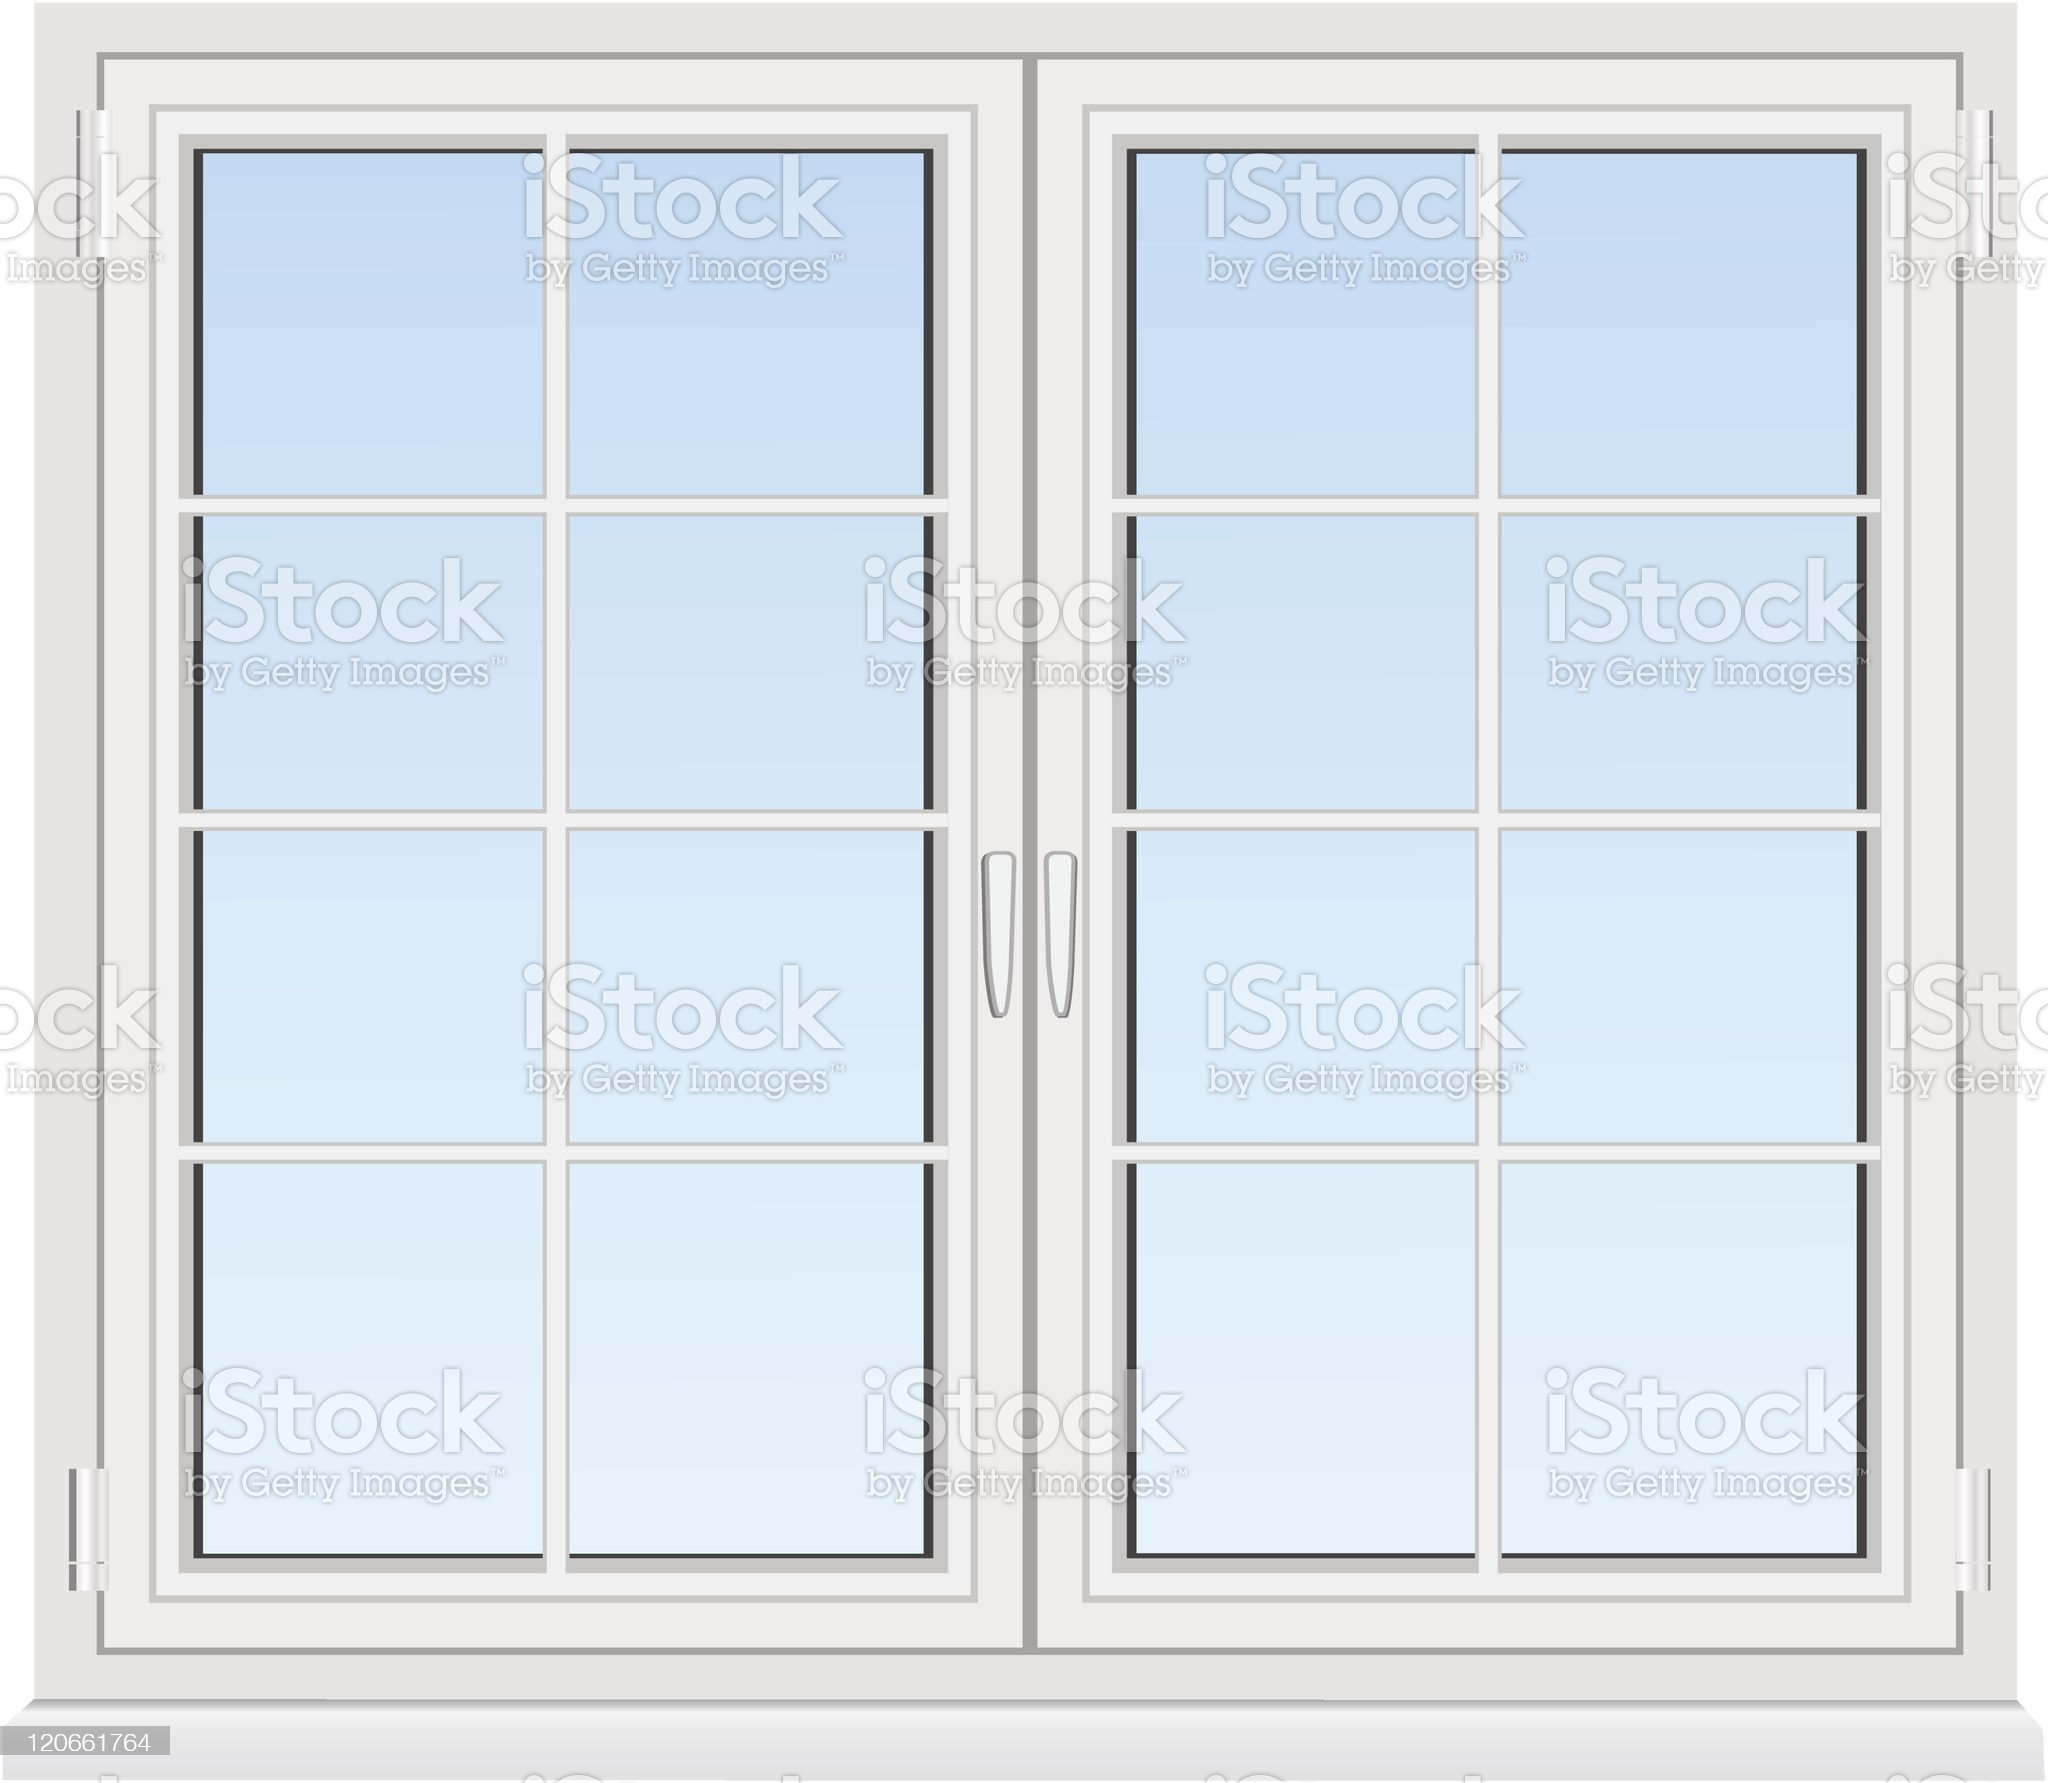 Drawing of a window and window panes royalty-free stock vector art